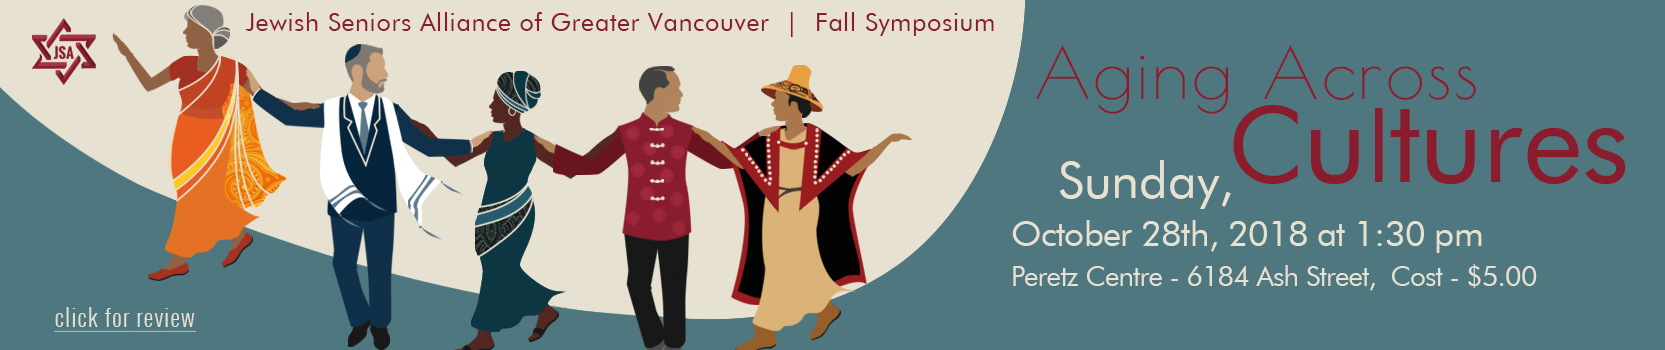 FallSymposium-2018-Review